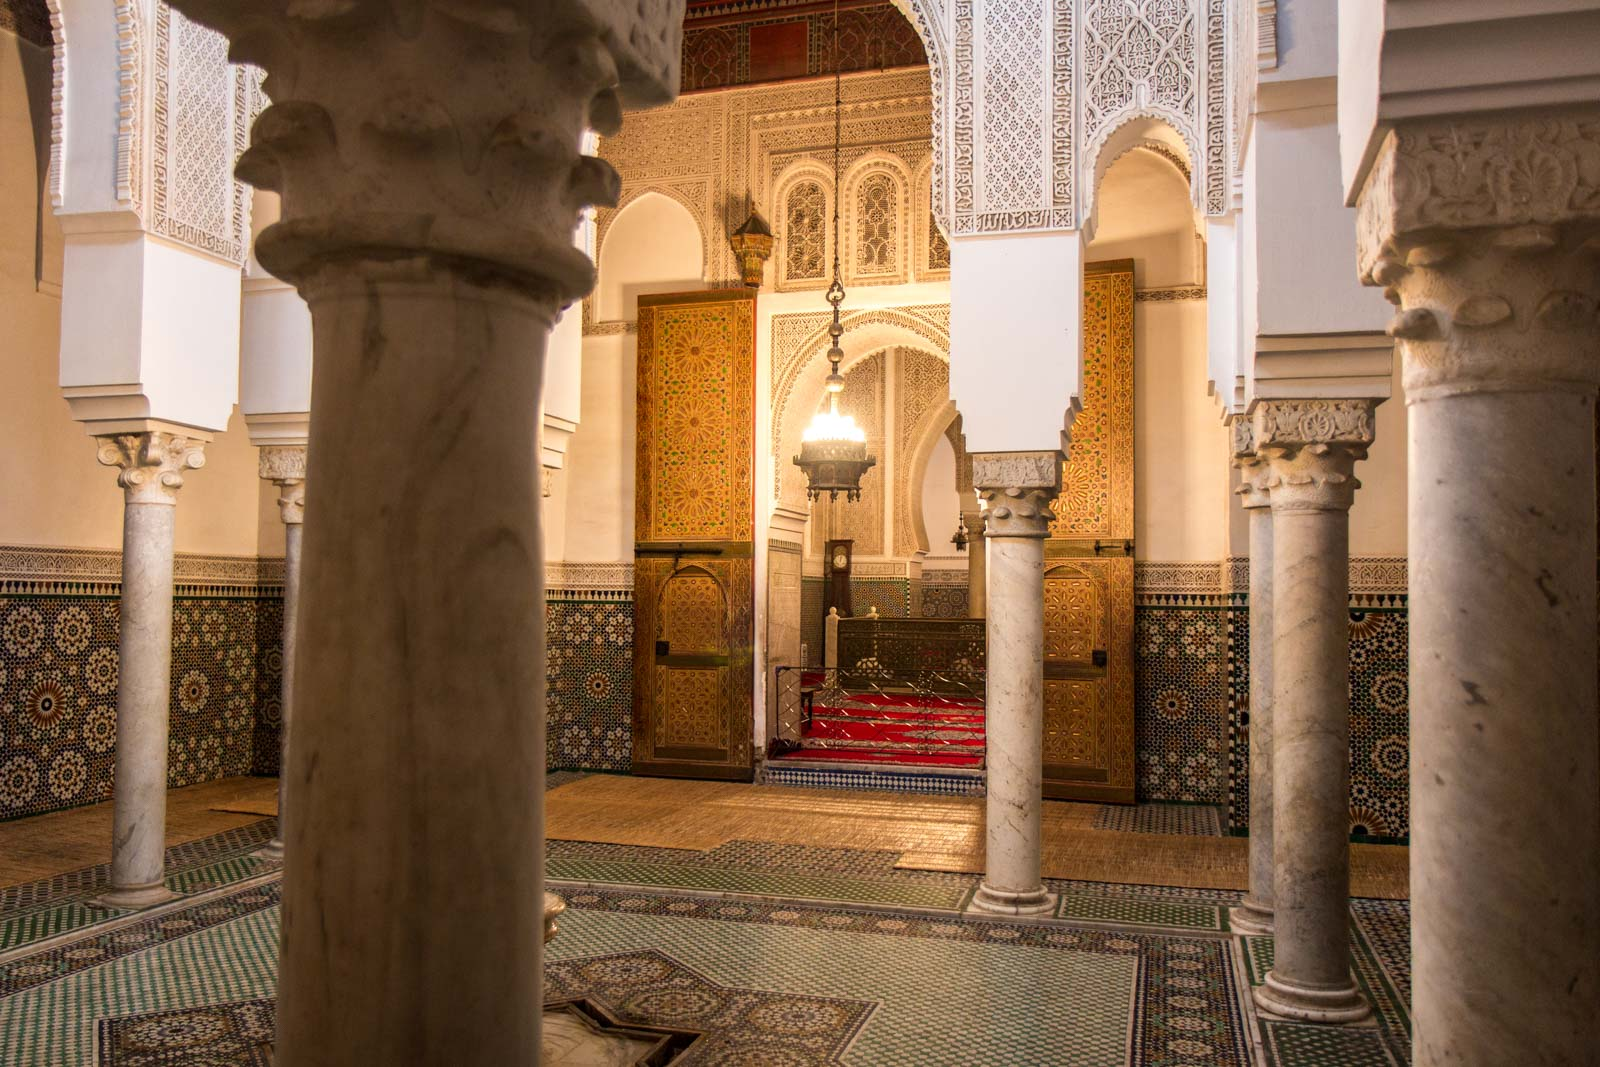 Things to do in Meknes, Morocco